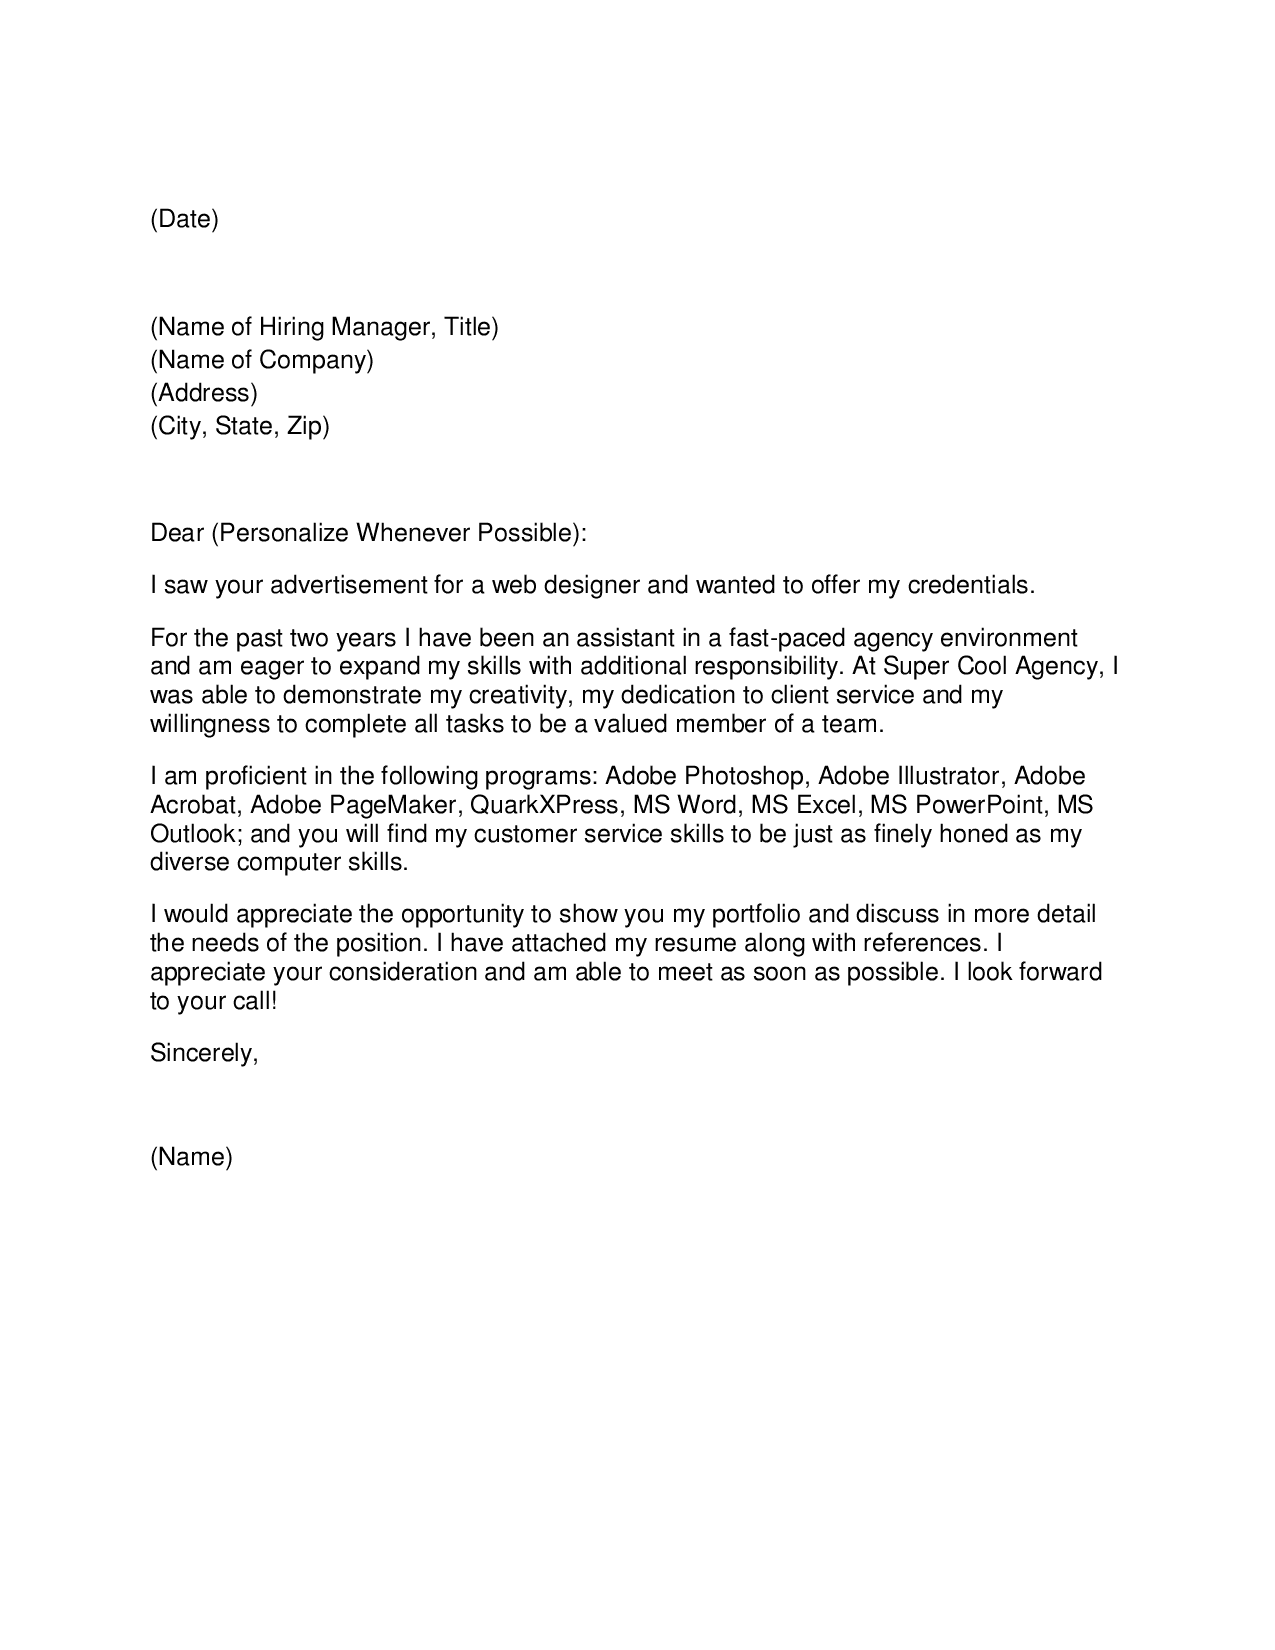 Addressing A Cover Letter To An Unknown Recipient Free Freedom